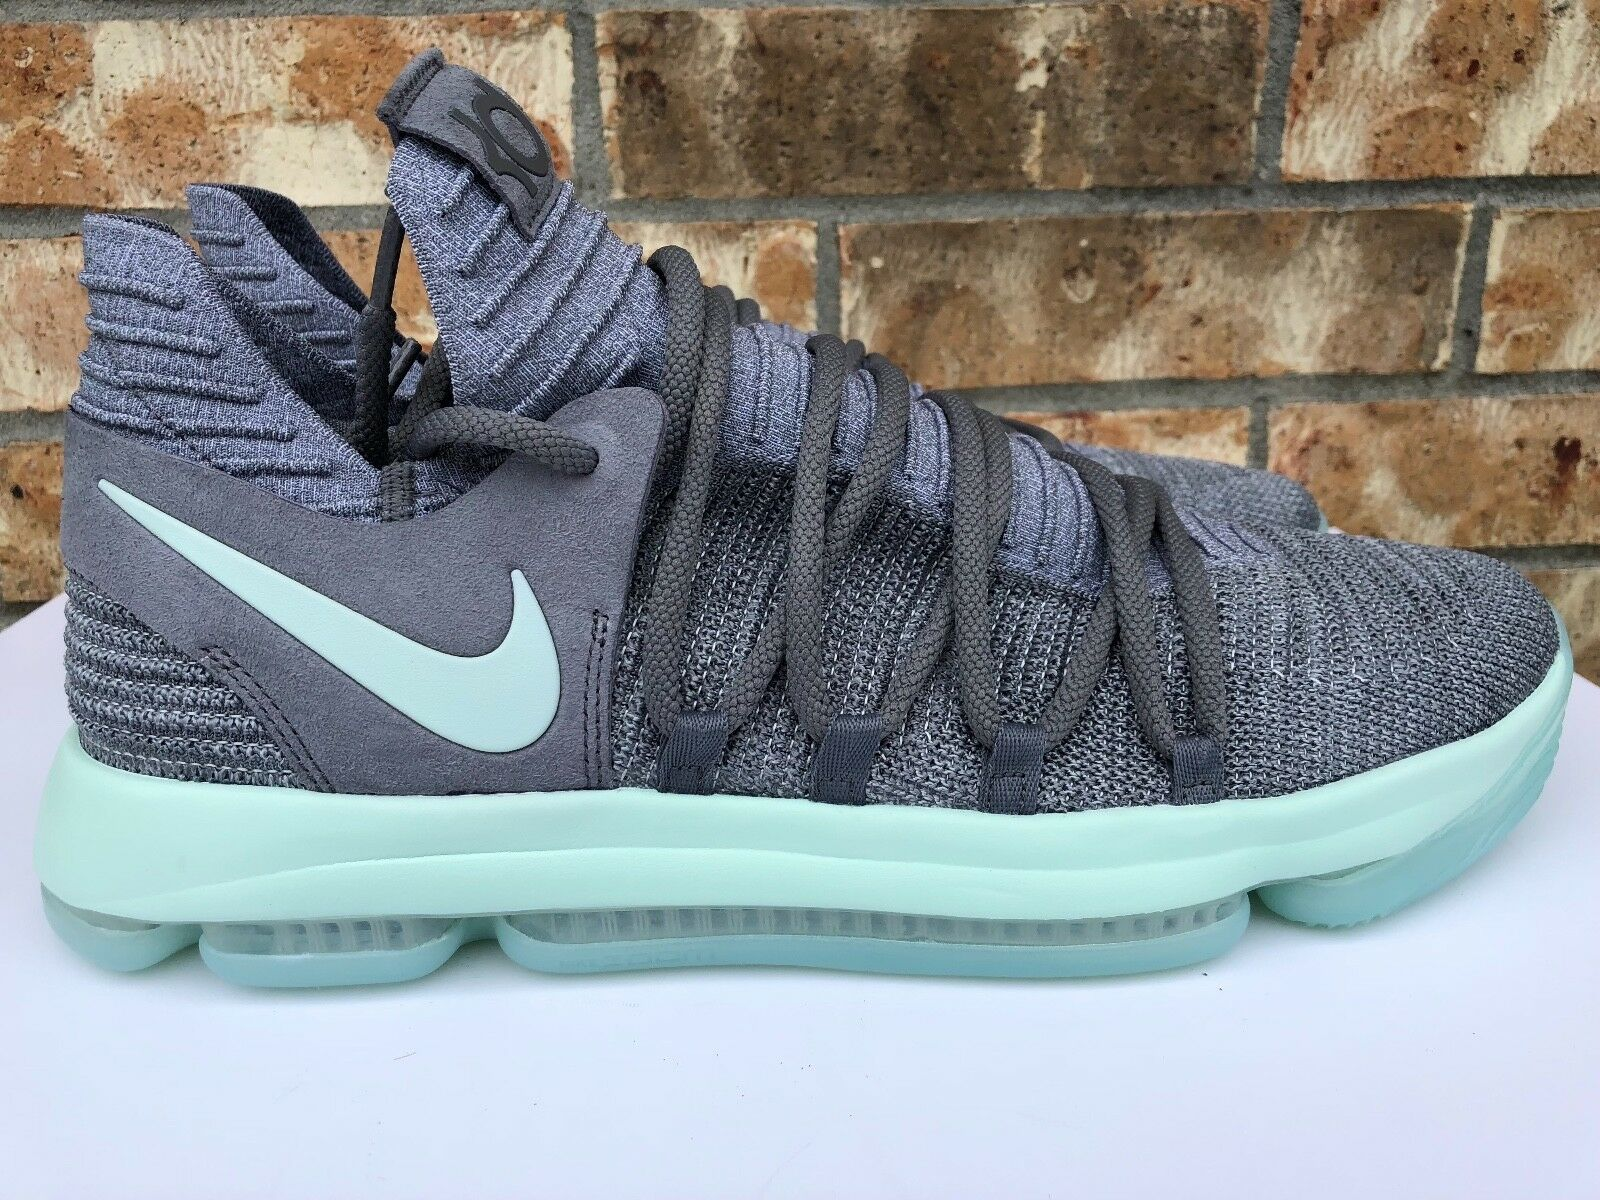 Hommes Nike Zoom KD 10 X Basketball Chaussures Cool Gris Igloo blanc Mint 897815-002